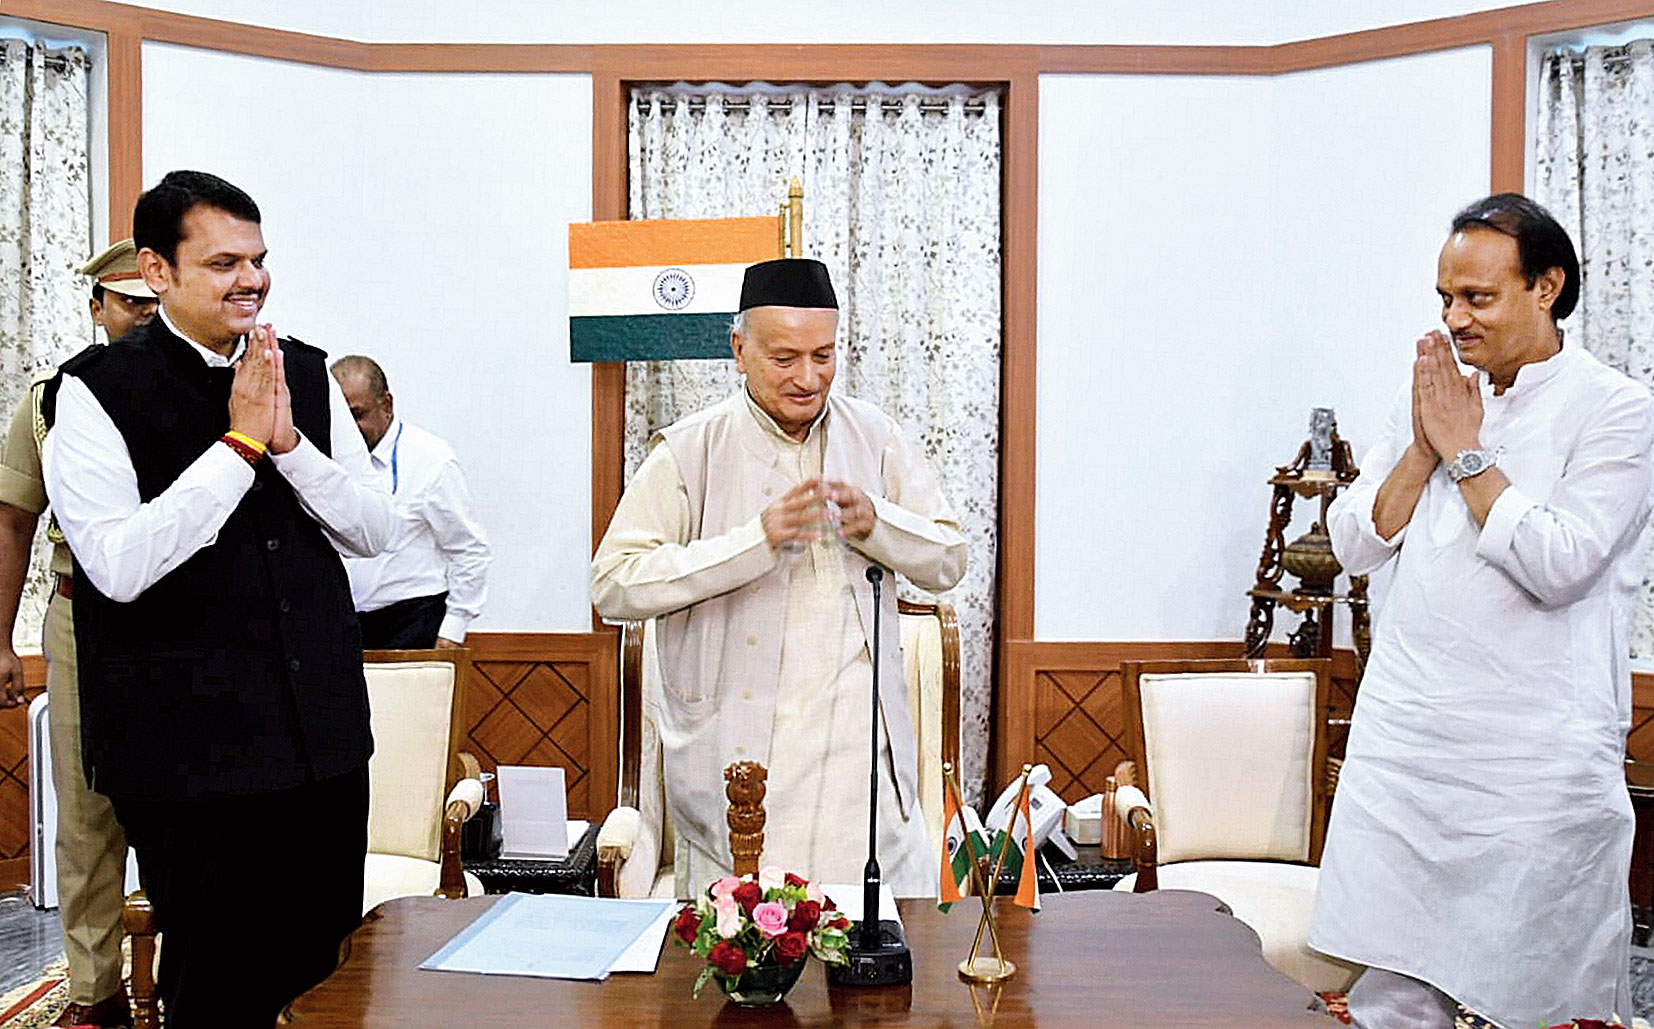 Maharashtra governor Bhagat Singh Koshyari flanked by newly appointed chief minister Devendra Fadnavis and deputy chief minister Ajit Pawar (right) after the oath-taking ceremony at 7.50am in Mumbai on Saturday.